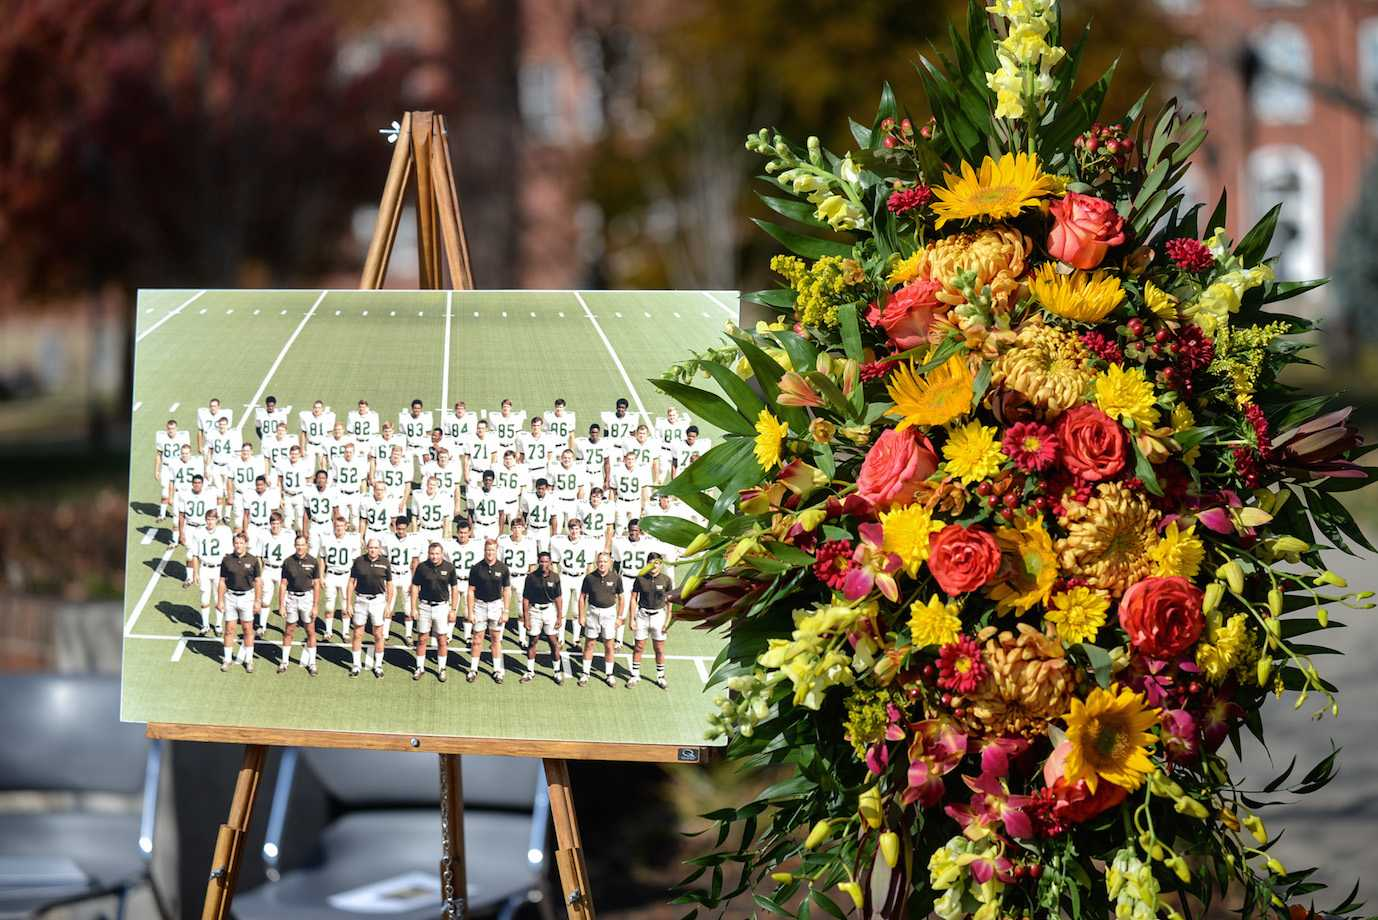 A photo of the 1970 Marshall football team is displayed during the 44th annual memorial service Friday at the Memorial Student Center plaza.